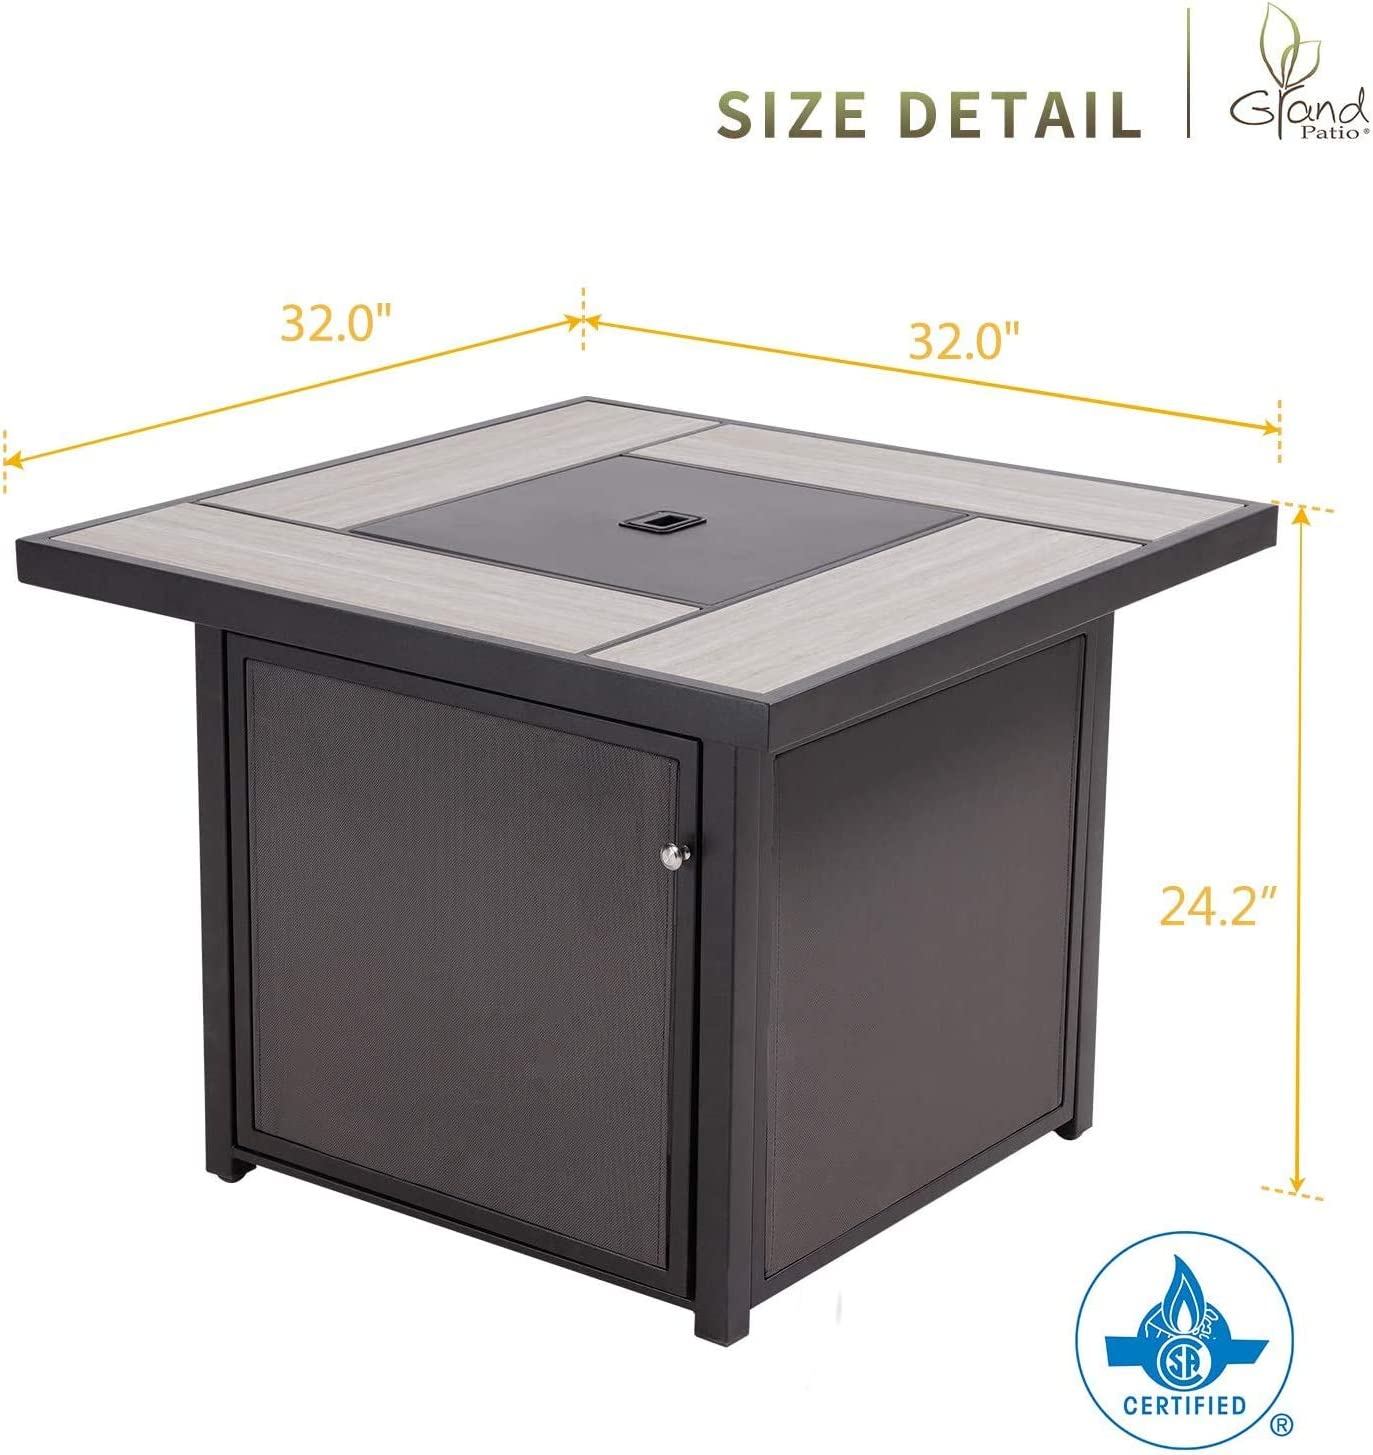 Grand patio Outdoor 32 Inch Propane Gas Fire Pit Table